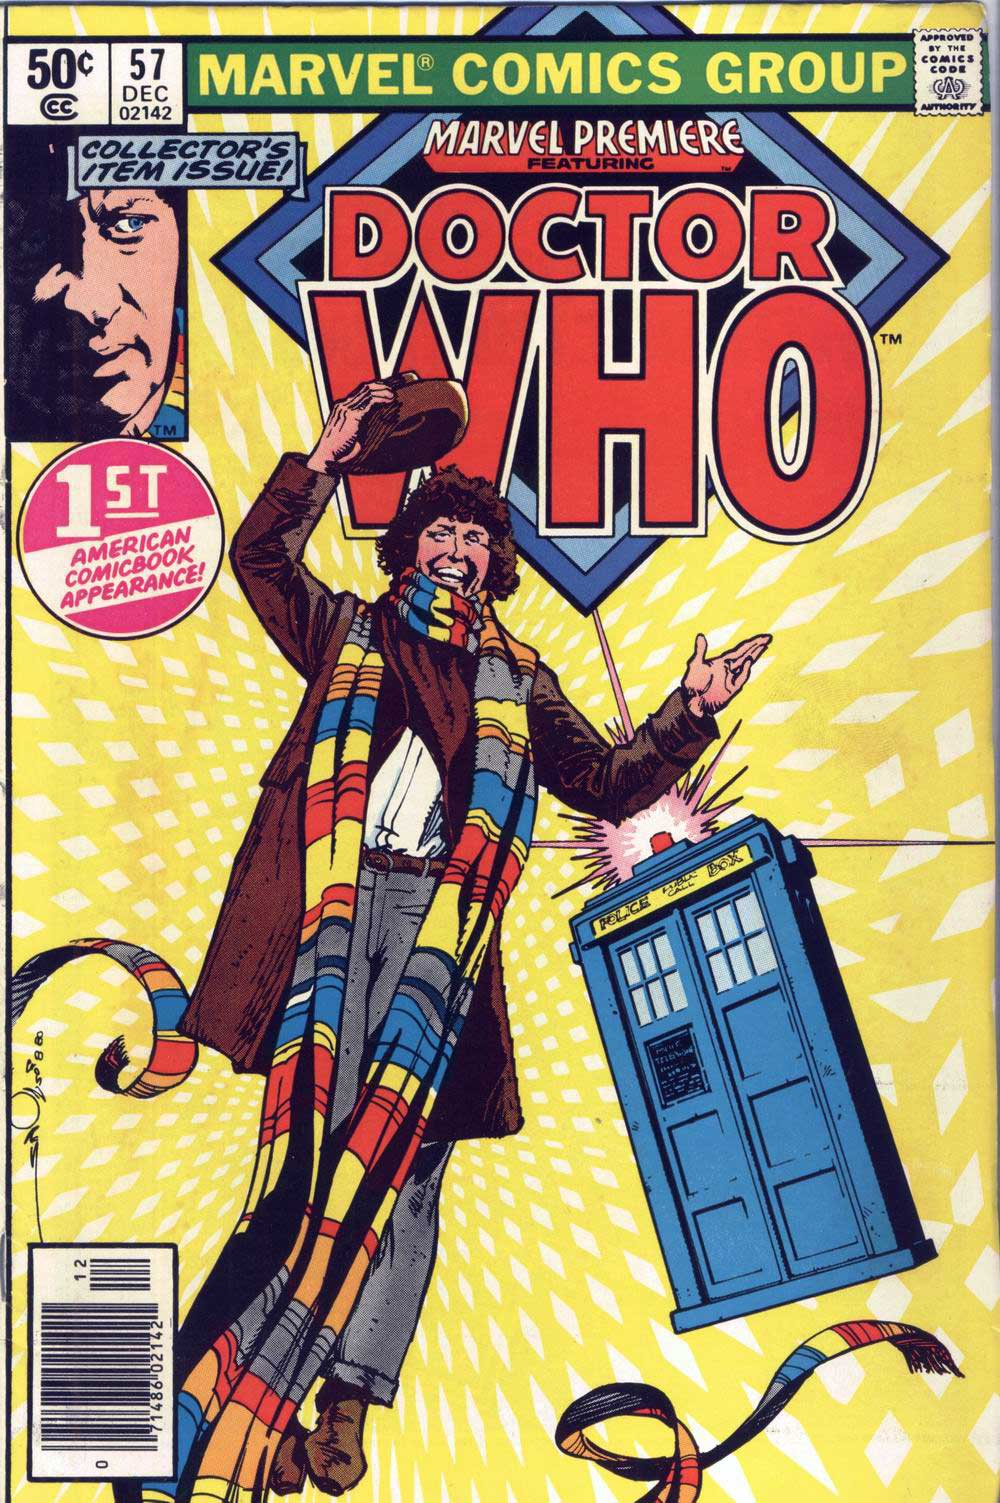 Doctor Who in Marvel Premiere #57 cover by Walt Simonson